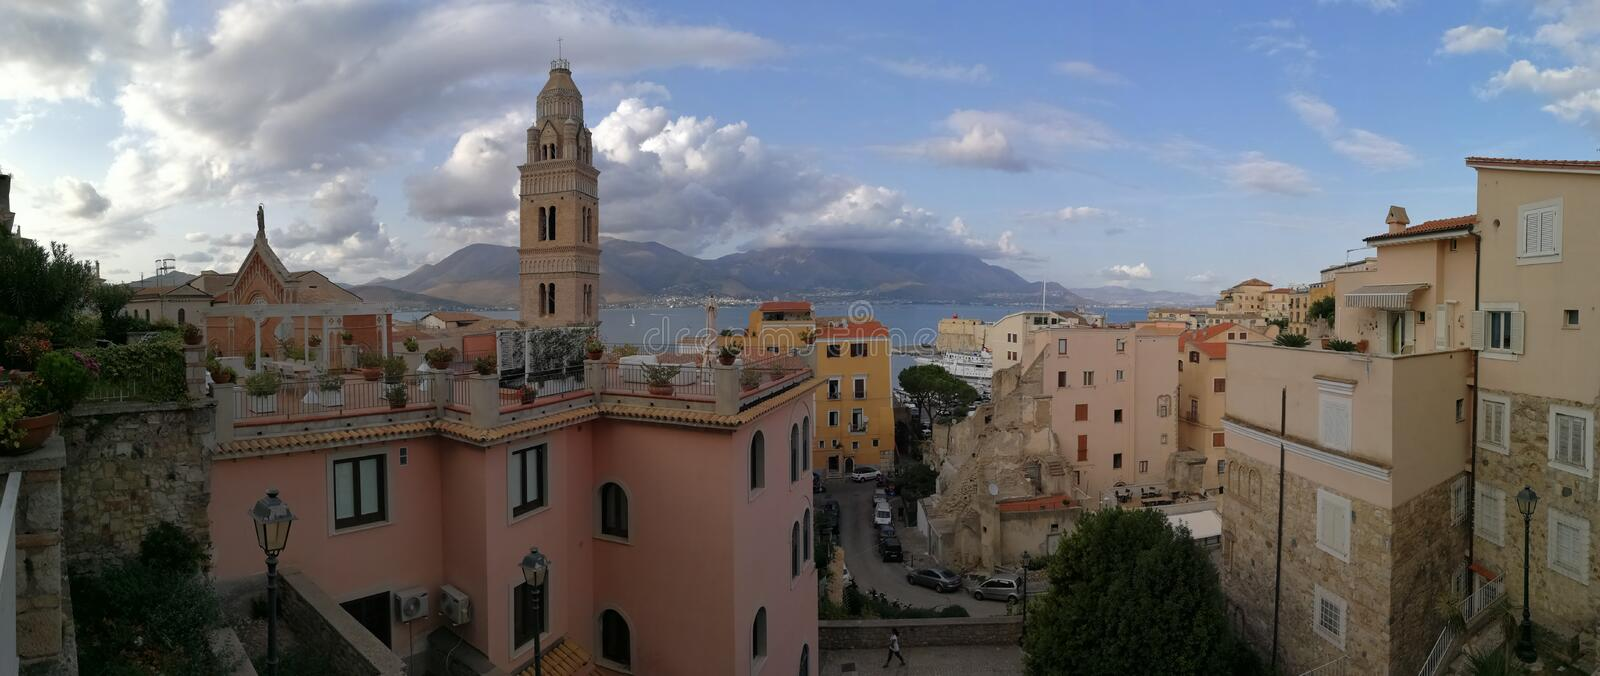 Gaeta - Overview of the Old Town royalty free stock image